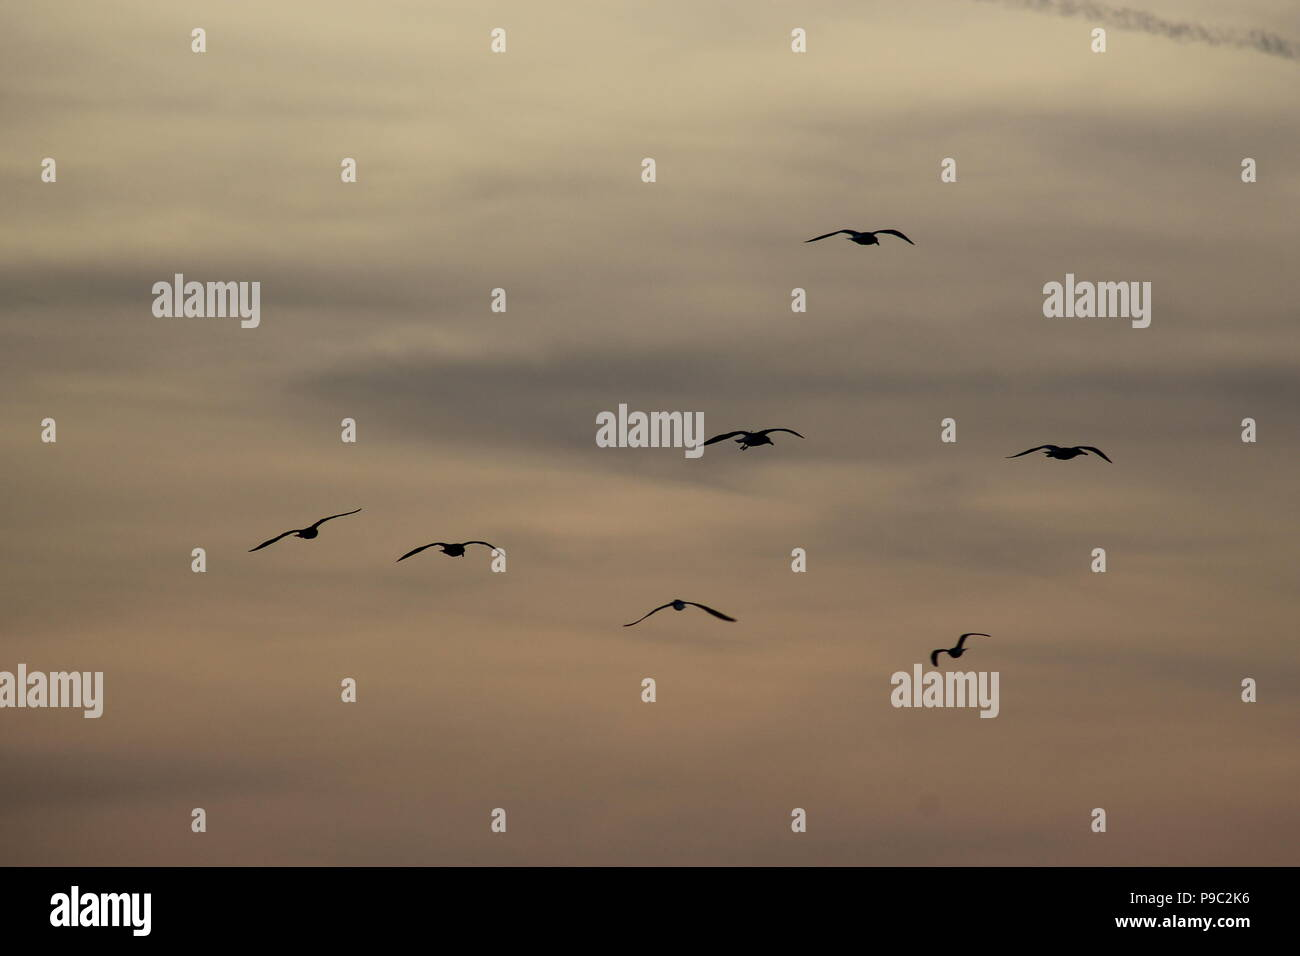 Group of seagulls - Stock Image